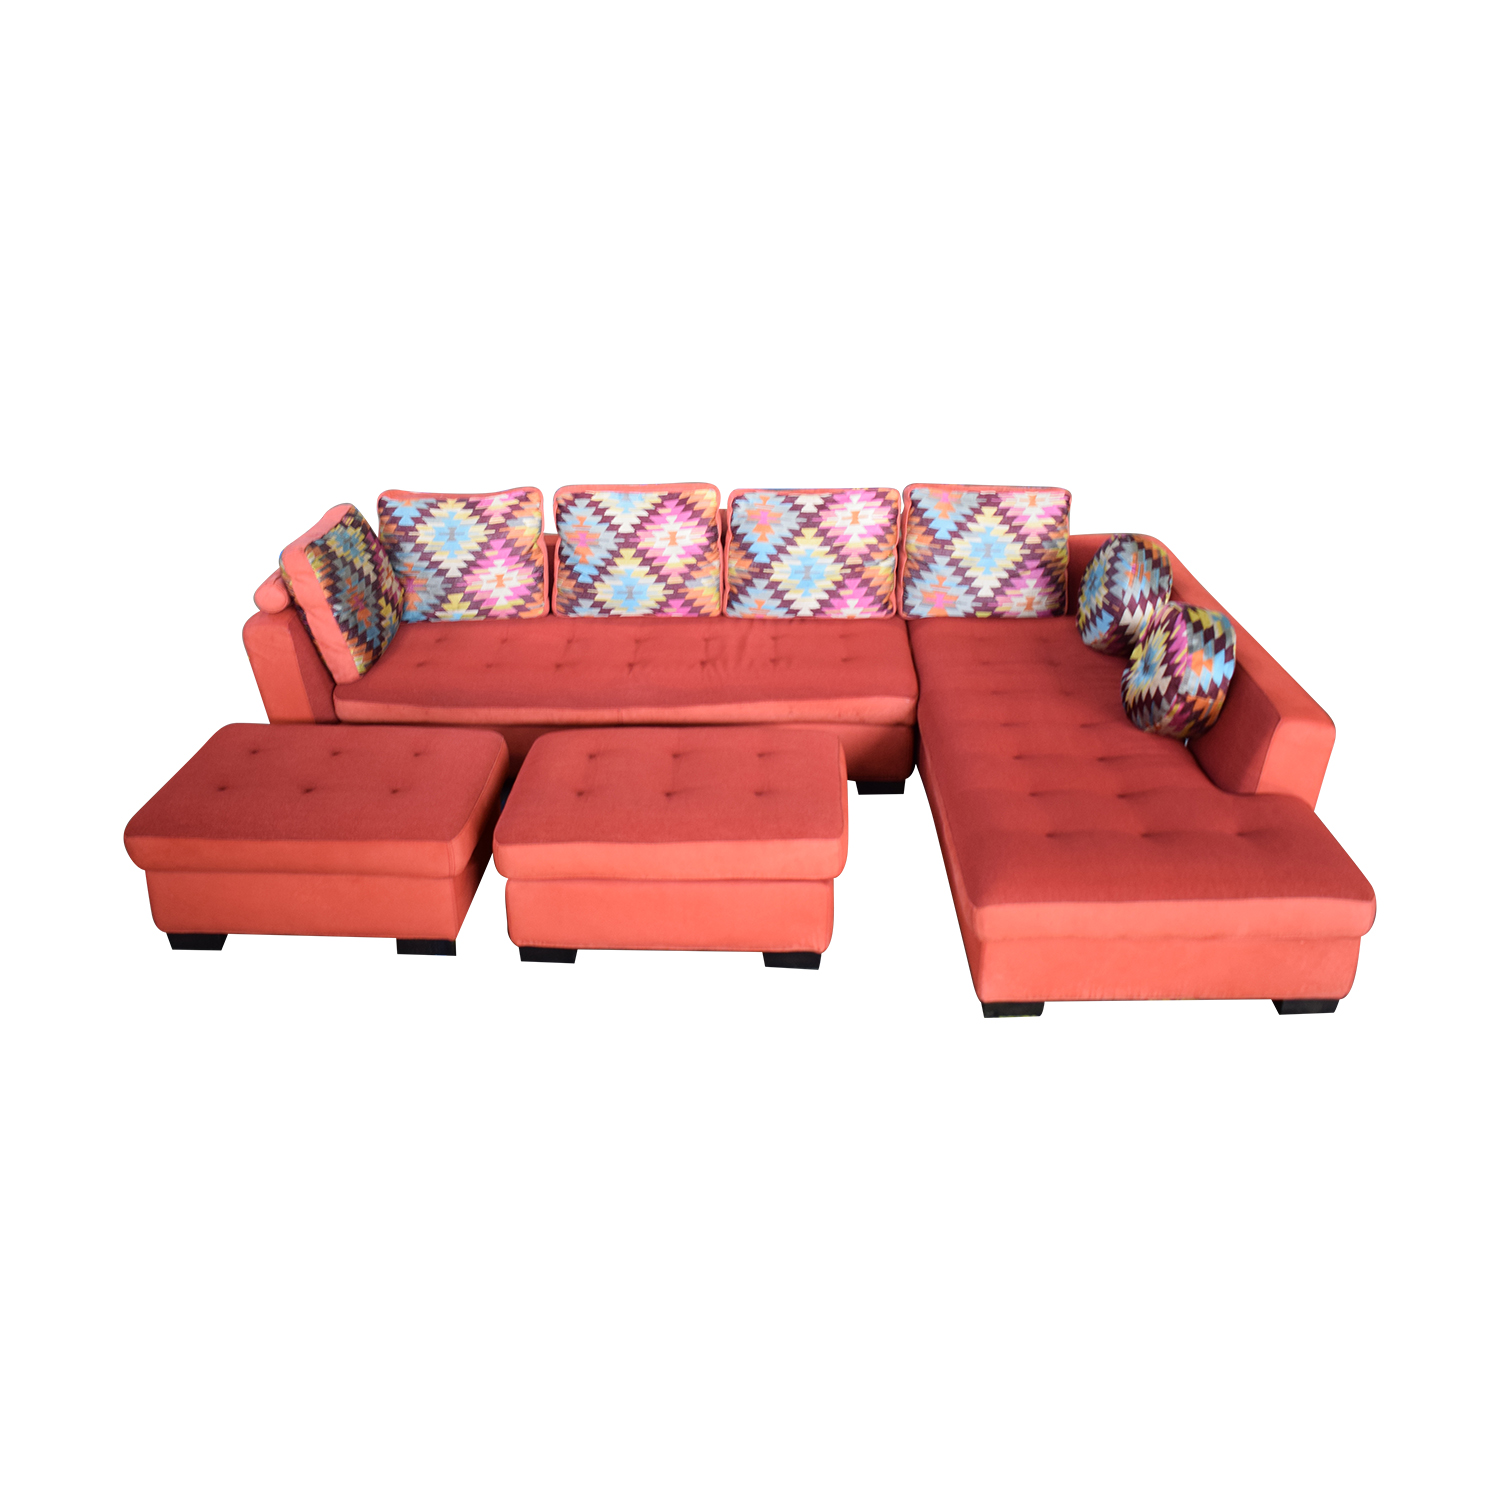 Maurice Villency Maurice Villency Sofa Sectional with Ottomans red